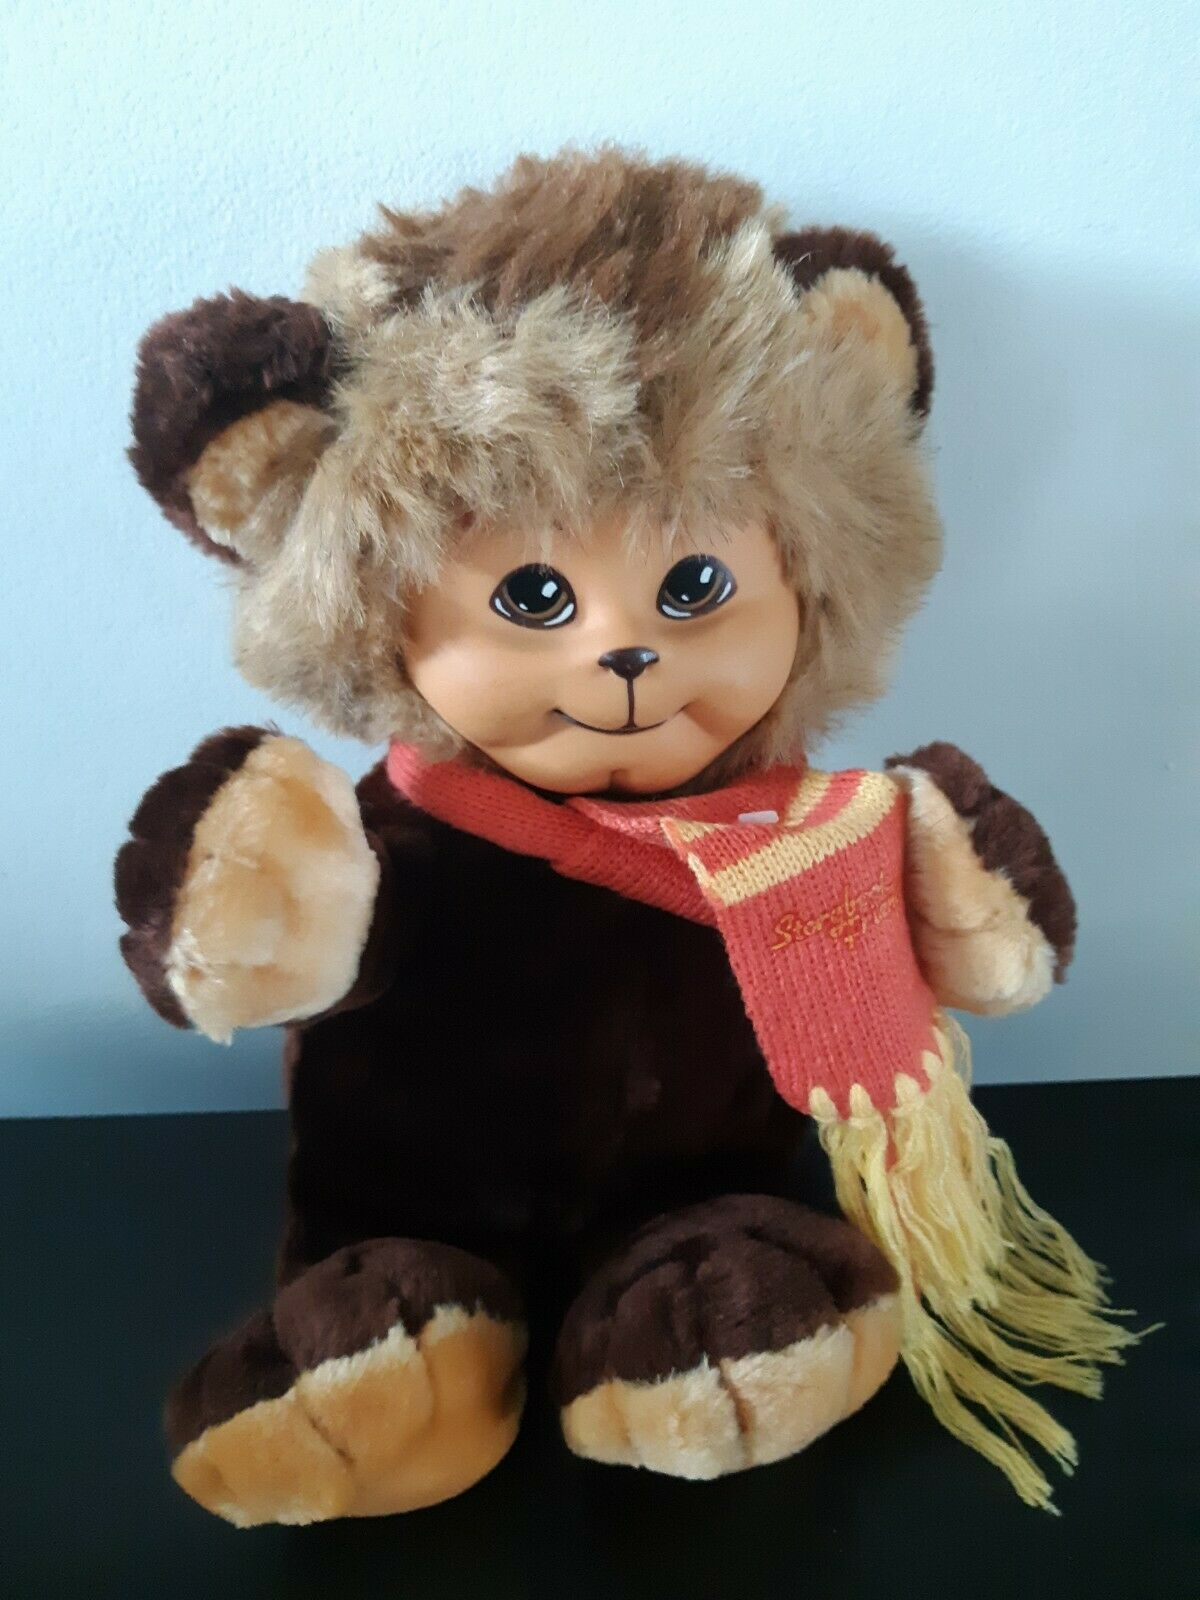 Vintage Storybook Friends Plush Stuffed Animal Toy Imports Bear 1984 Brown 12